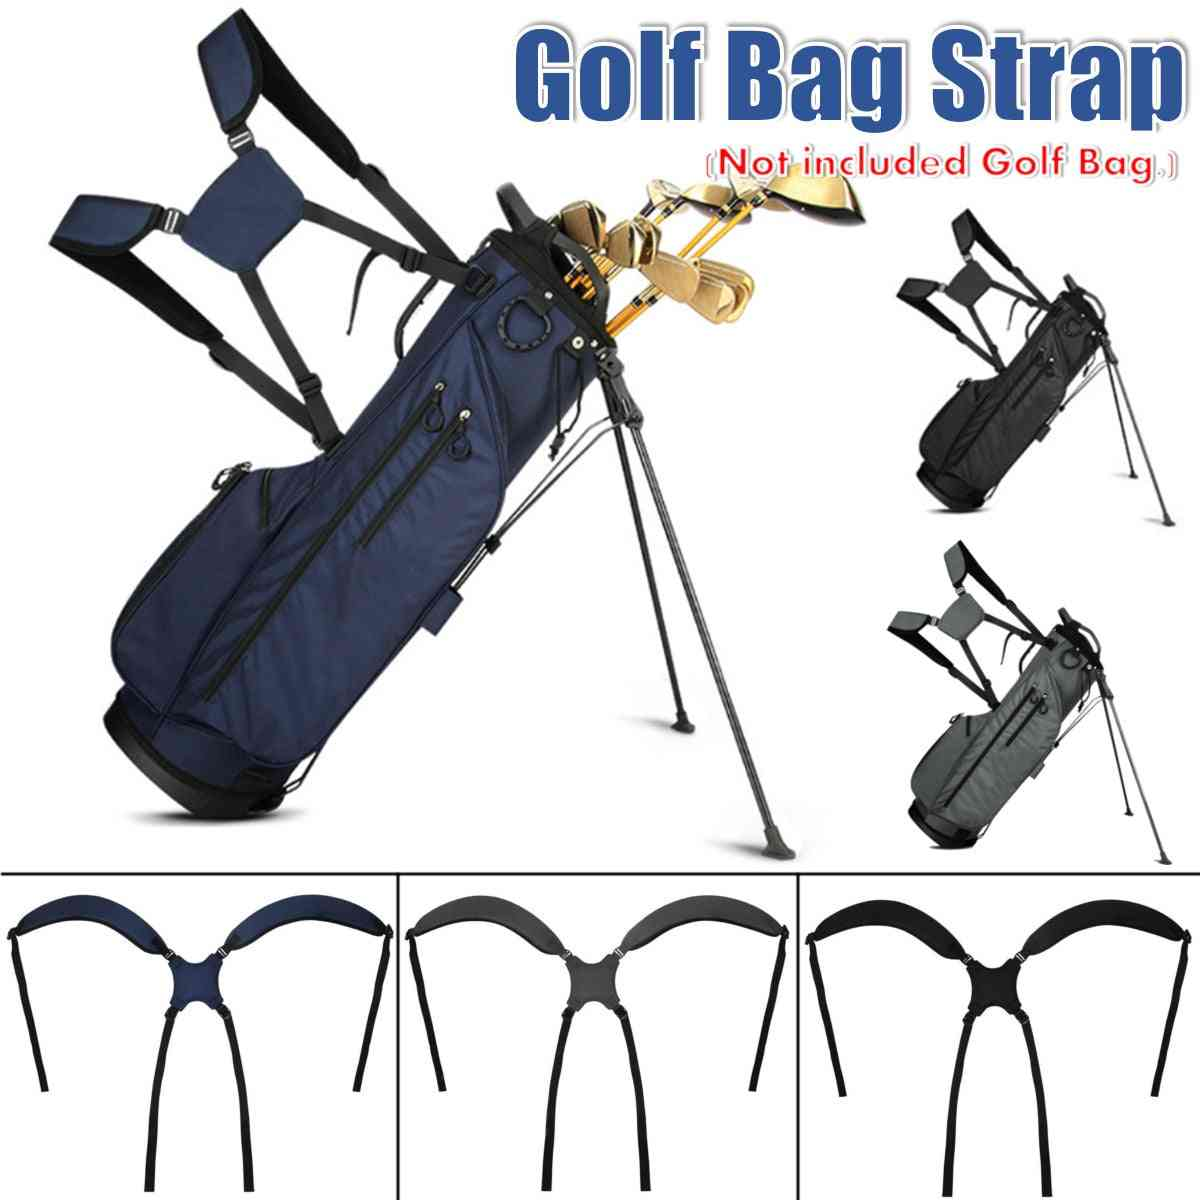 Golf Shoulder Strap Padded For Carry Bag, Foldable/ Adjustable/ Replacement Accessories